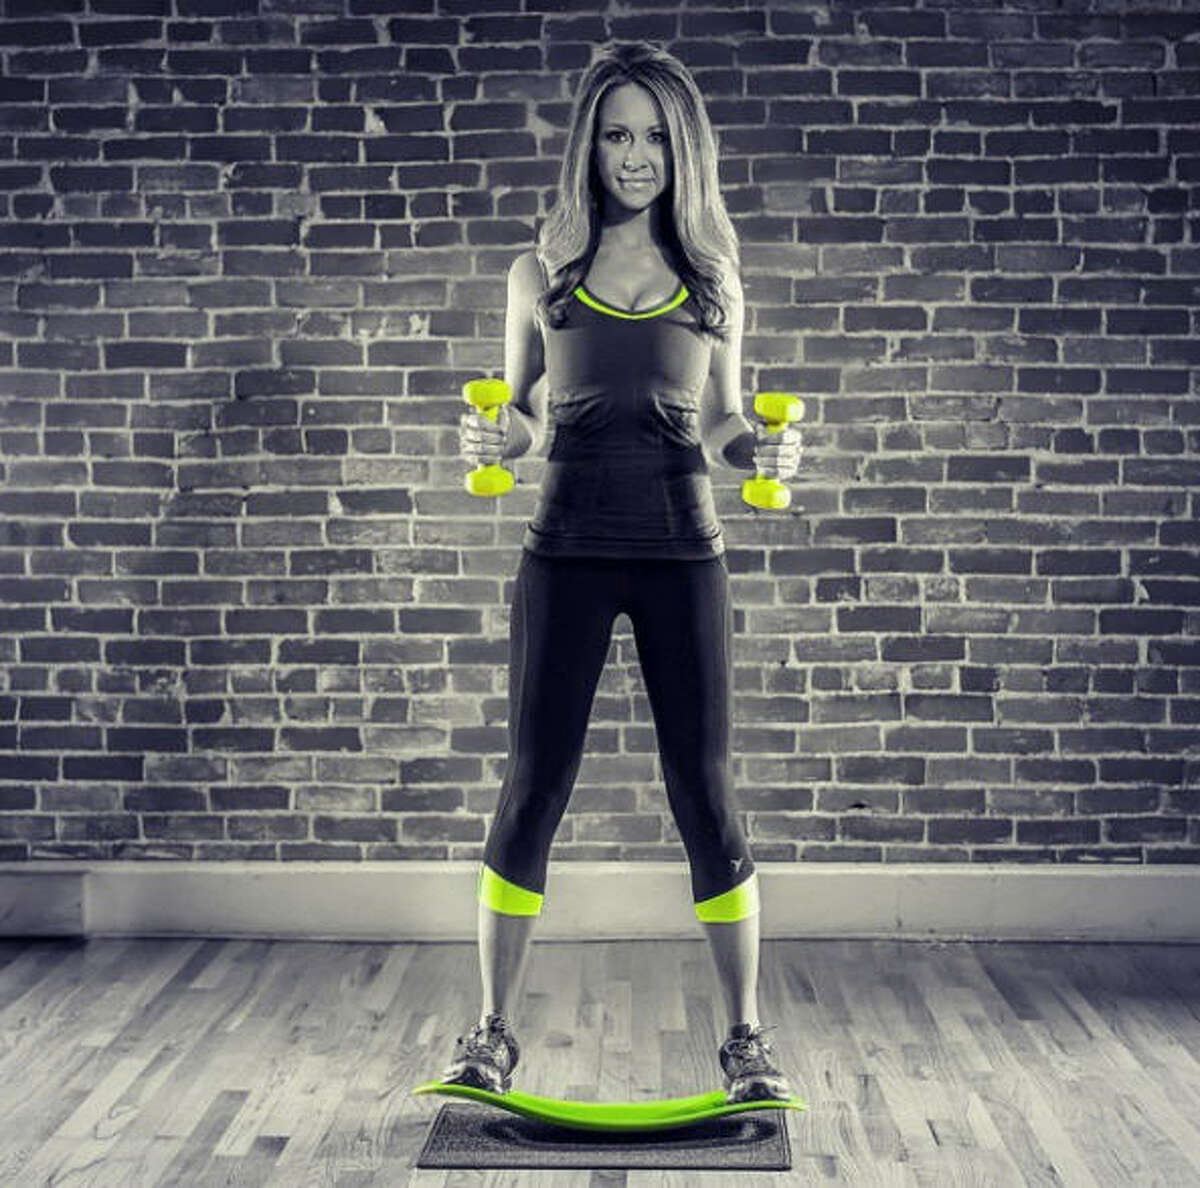 SIMPLY FIT WORKOUT BALANCE BOARD:A unique balance board that has pivoting action which helps engage & tone entire body. AMAZON LINK